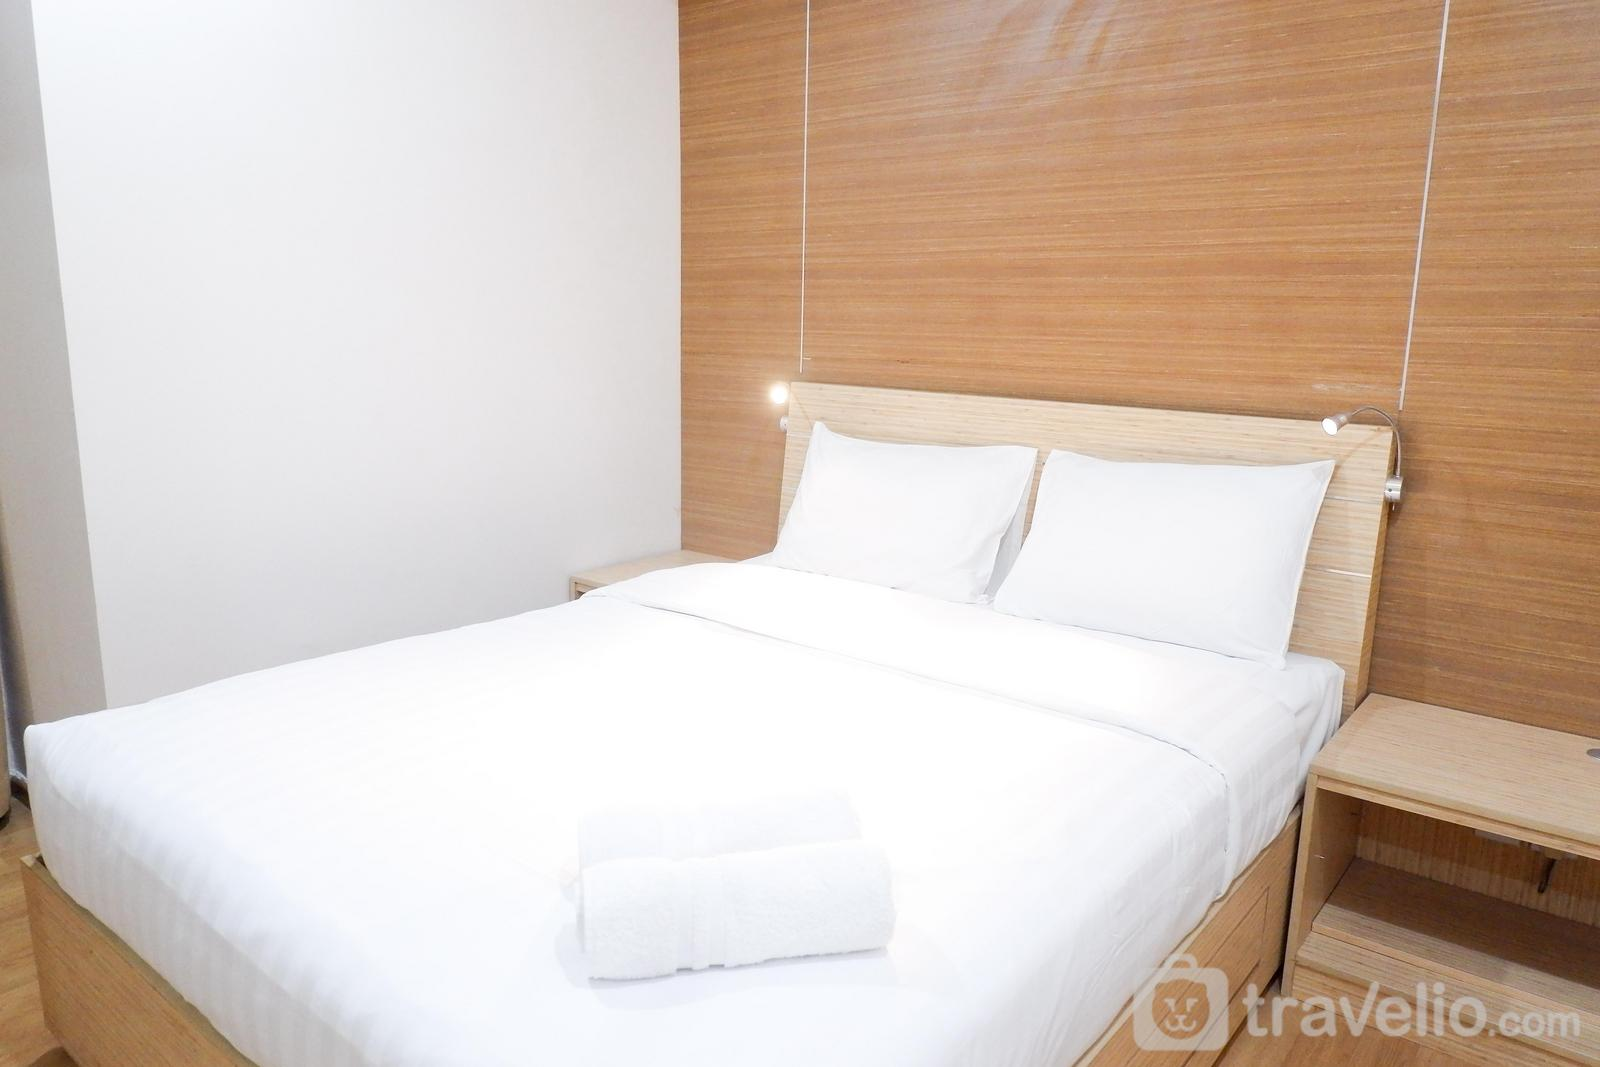 Casa Grande Residence - 1BR Casa Grande Apartment with Sofabed Connected to Kota Kasablanka By Travelio